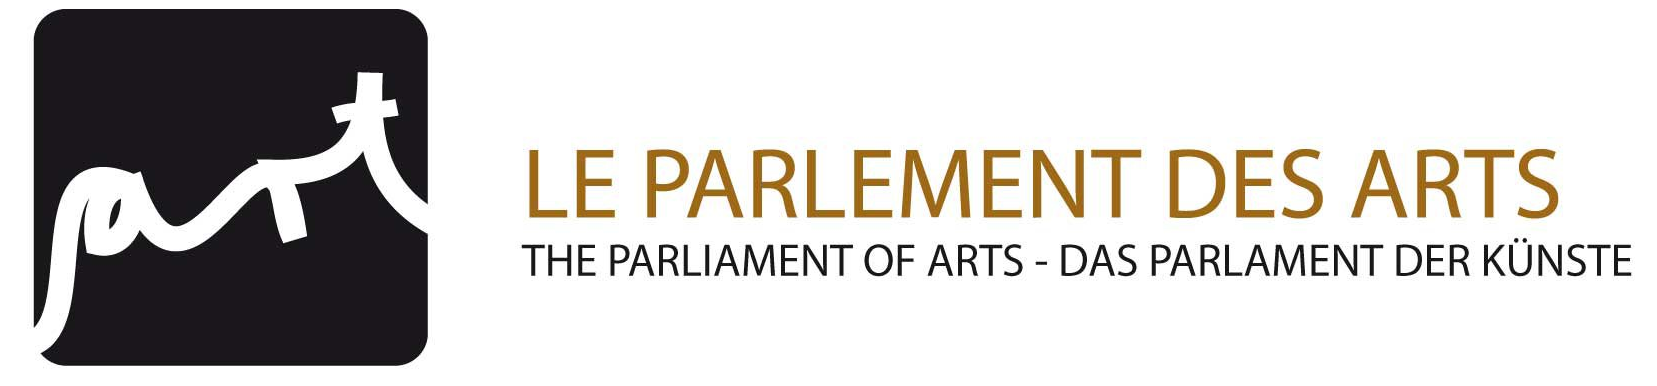 Parlements des arts Logo